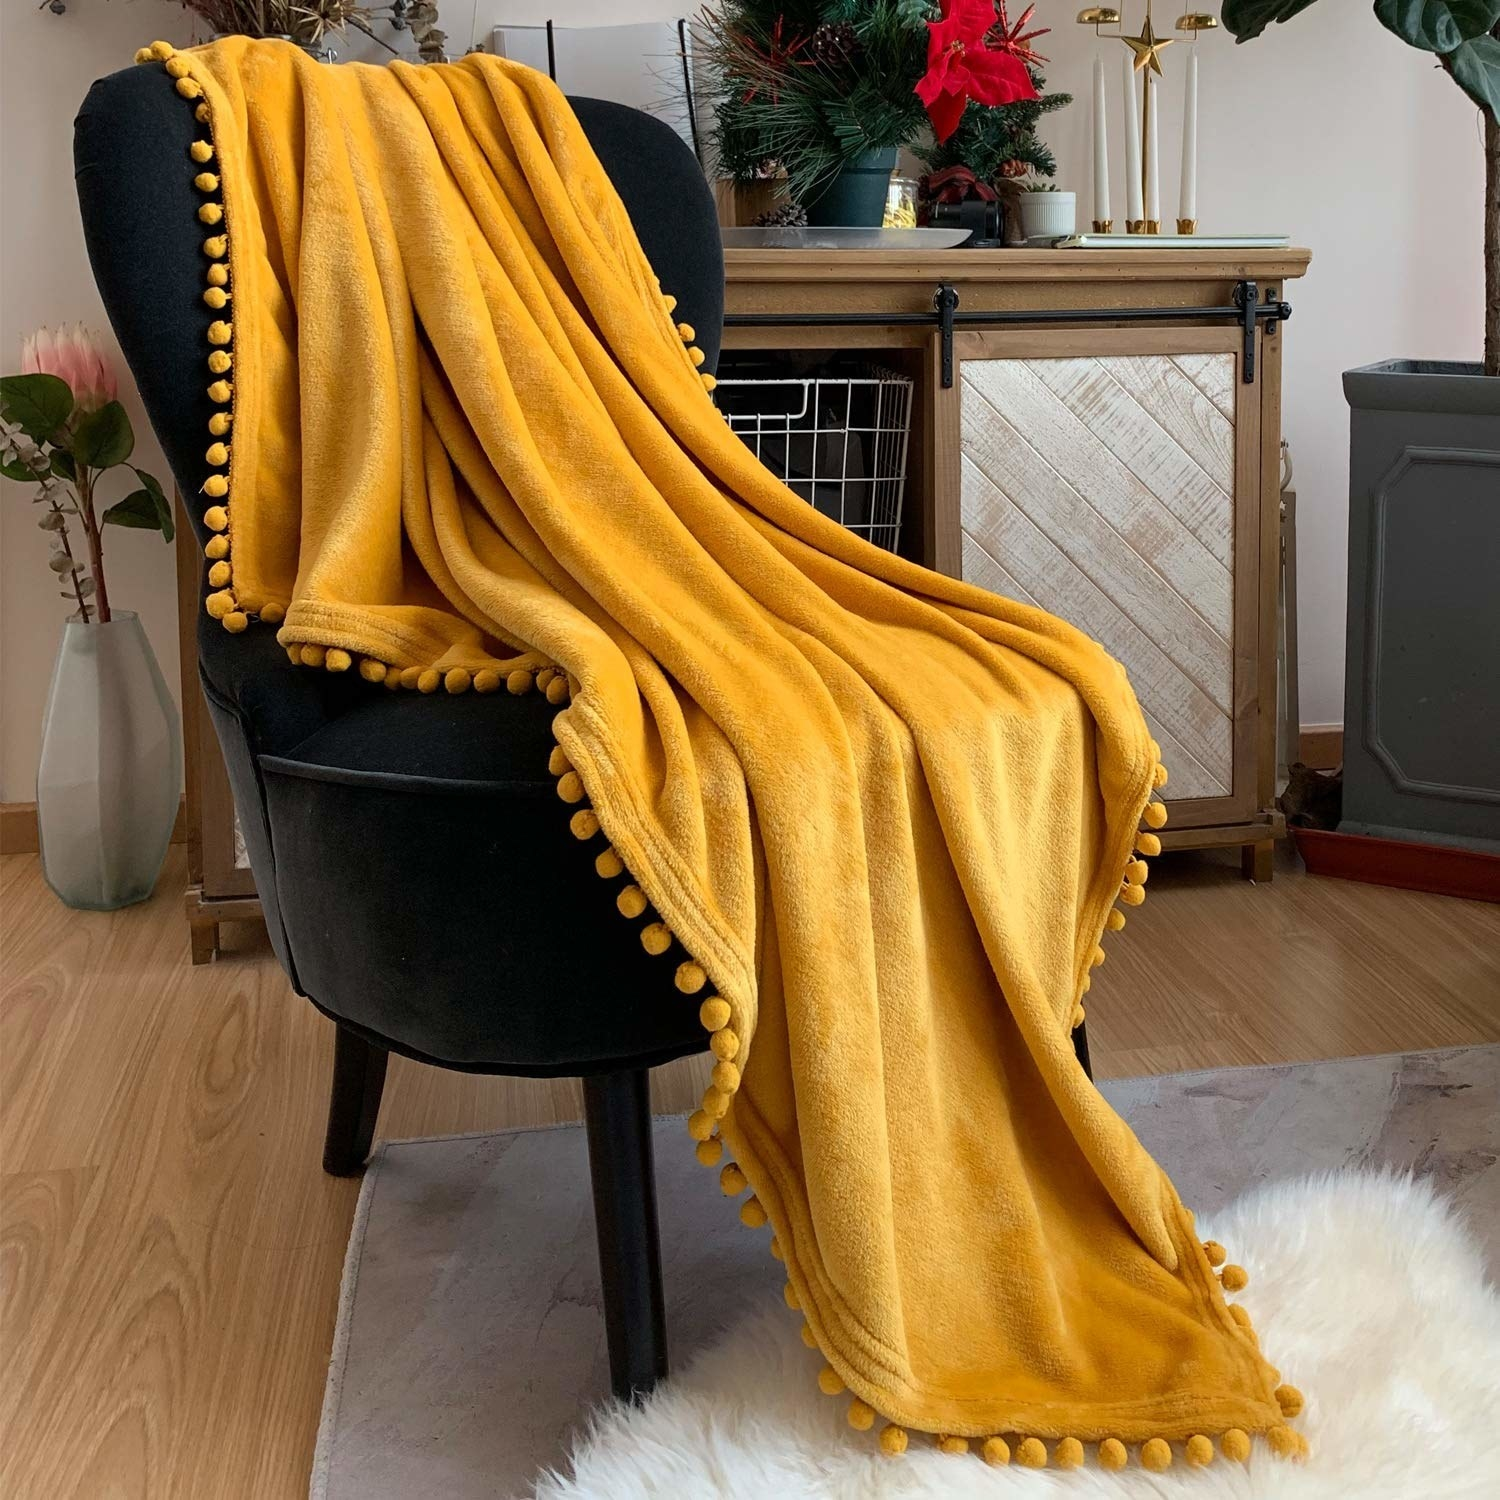 the yellow throw blanket with a pompom trim